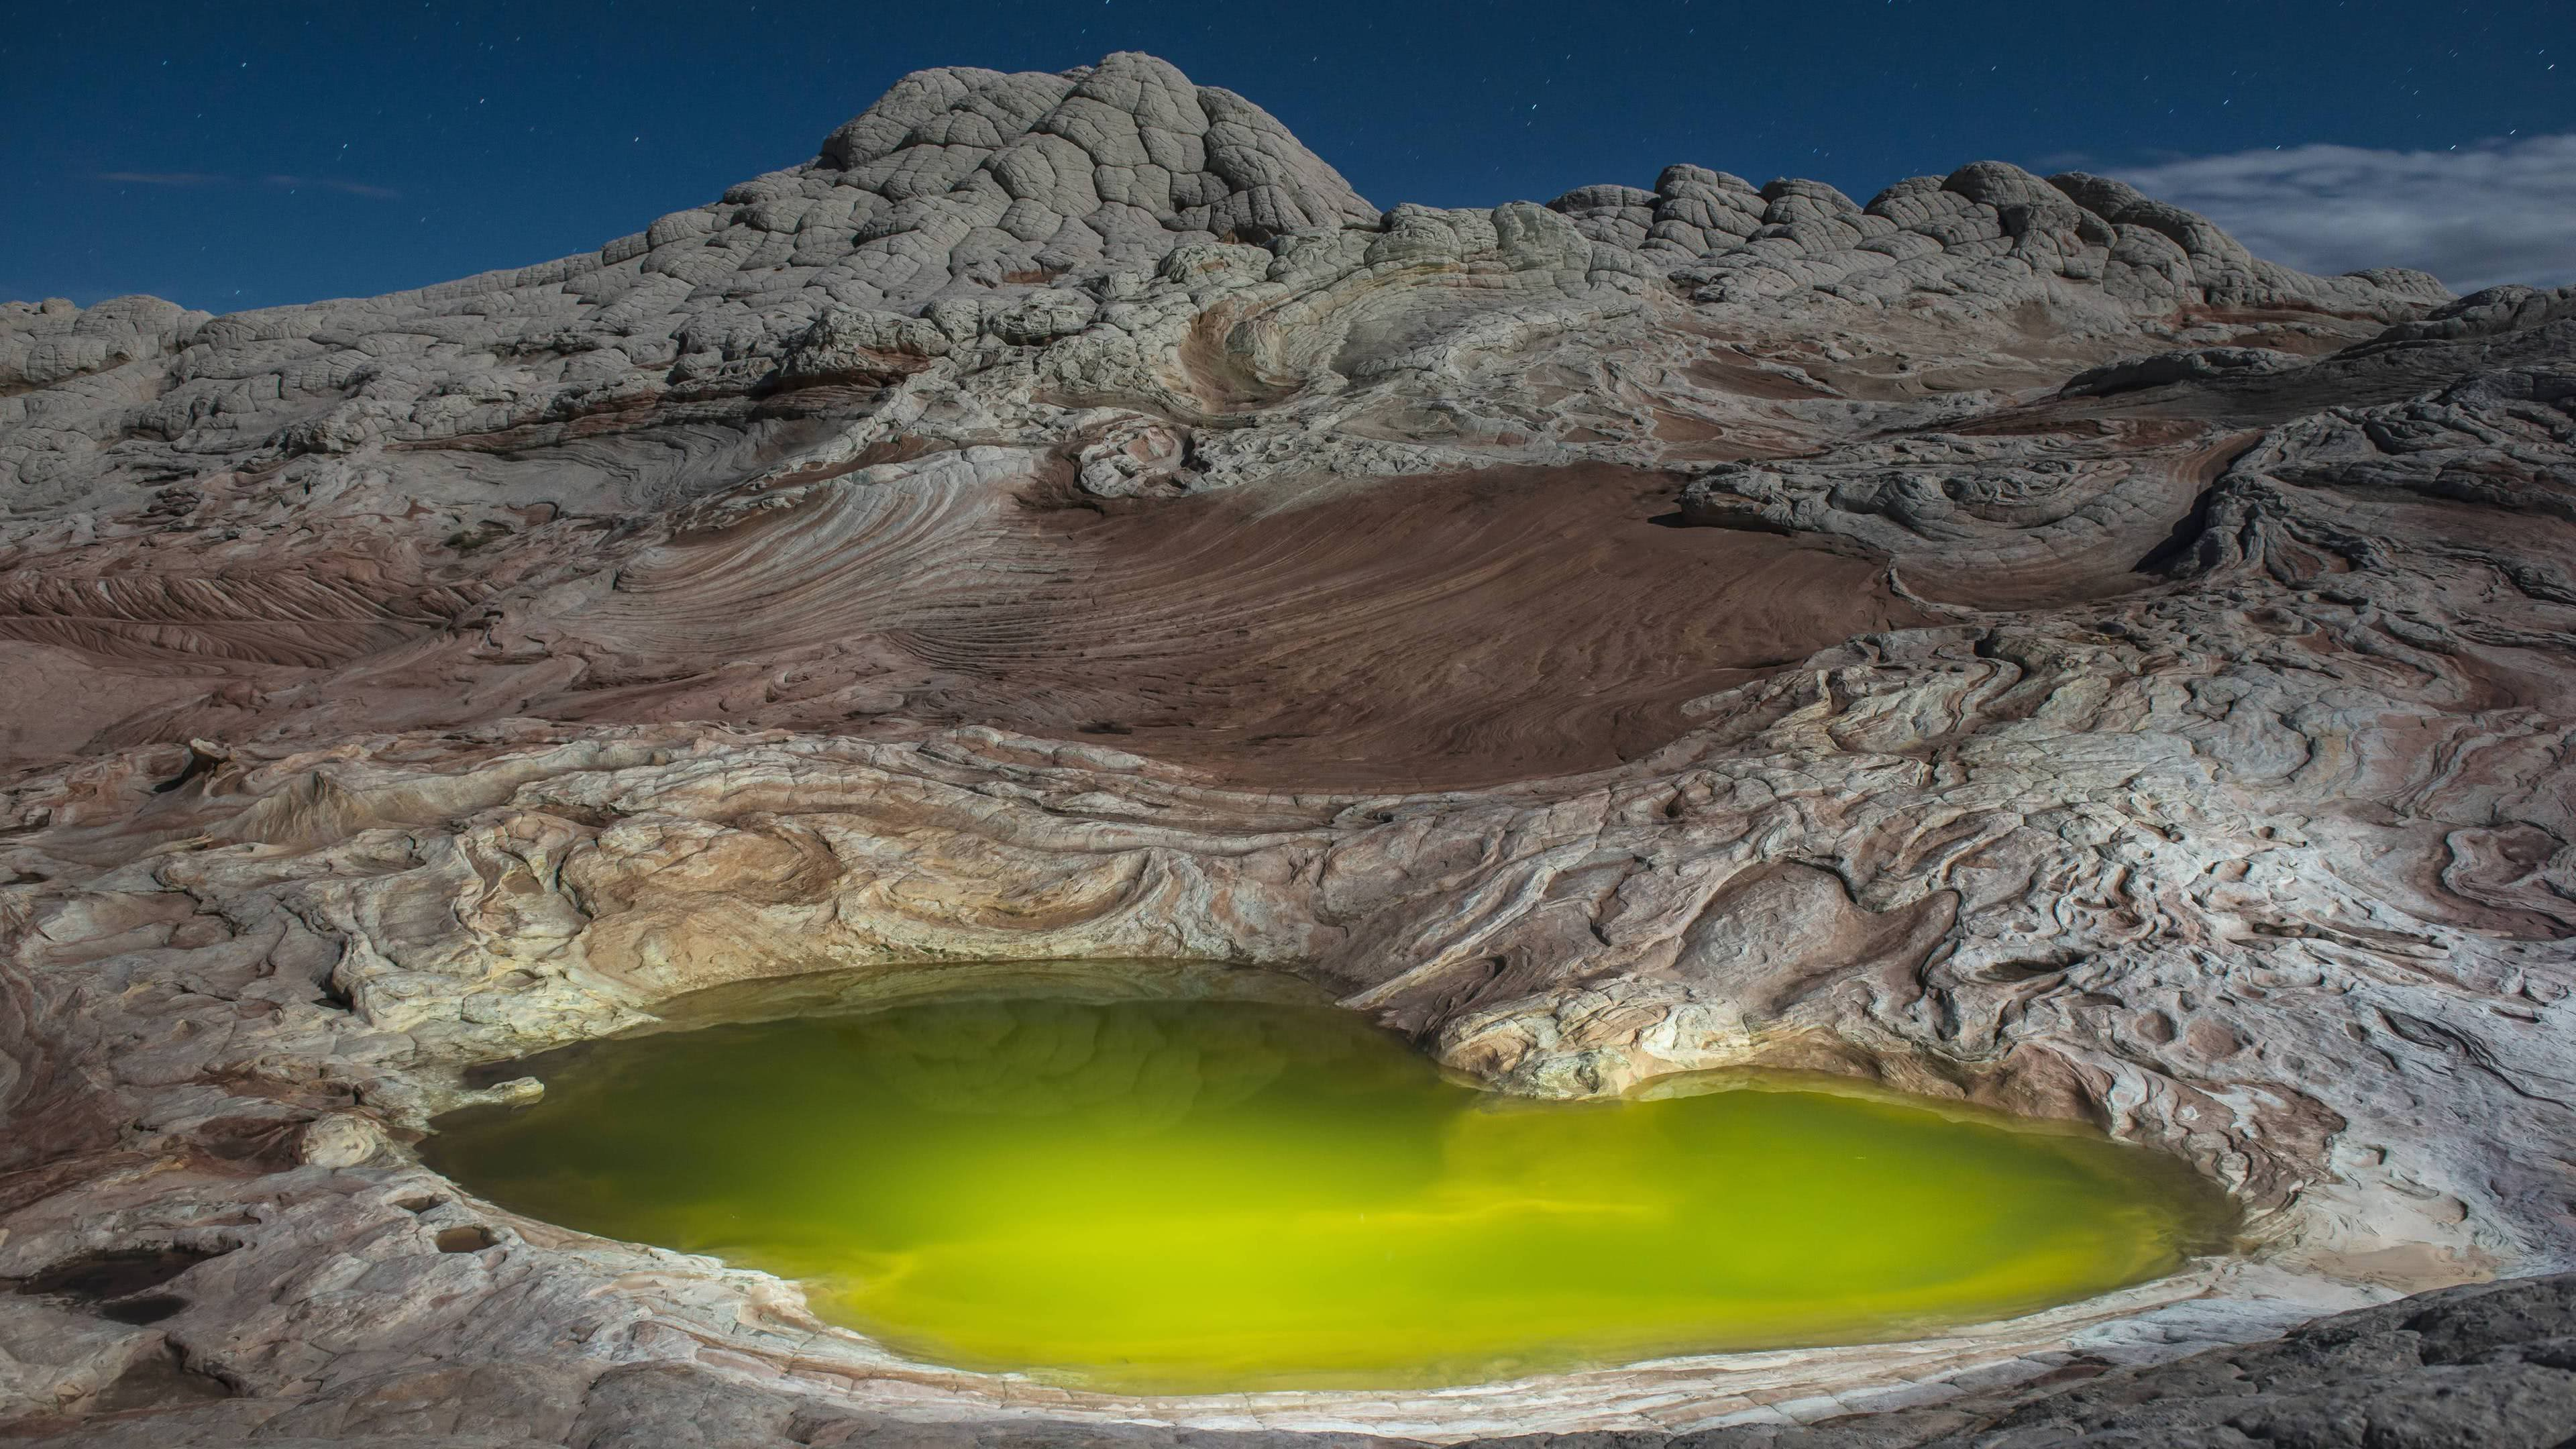 algae pond arizona united states uhd 4k wallpaper